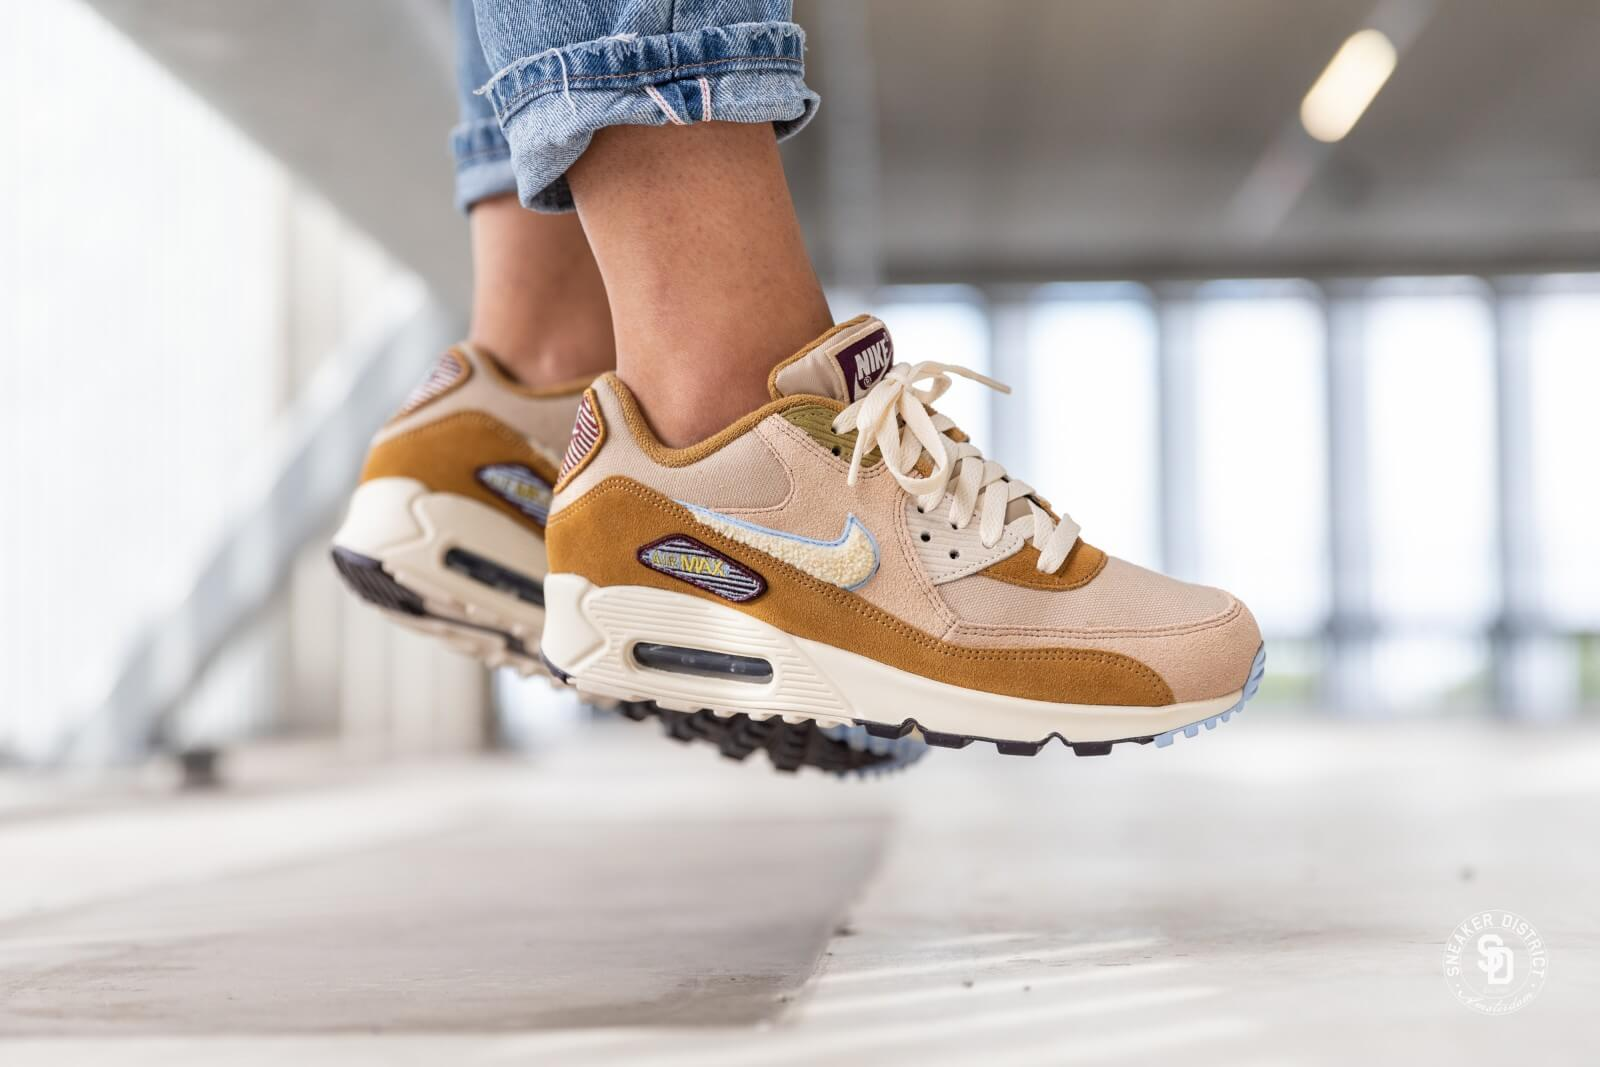 nike AIR MAX 90 PREMIUM SE MUTED BRONZELIGHT CREAM ROYAL